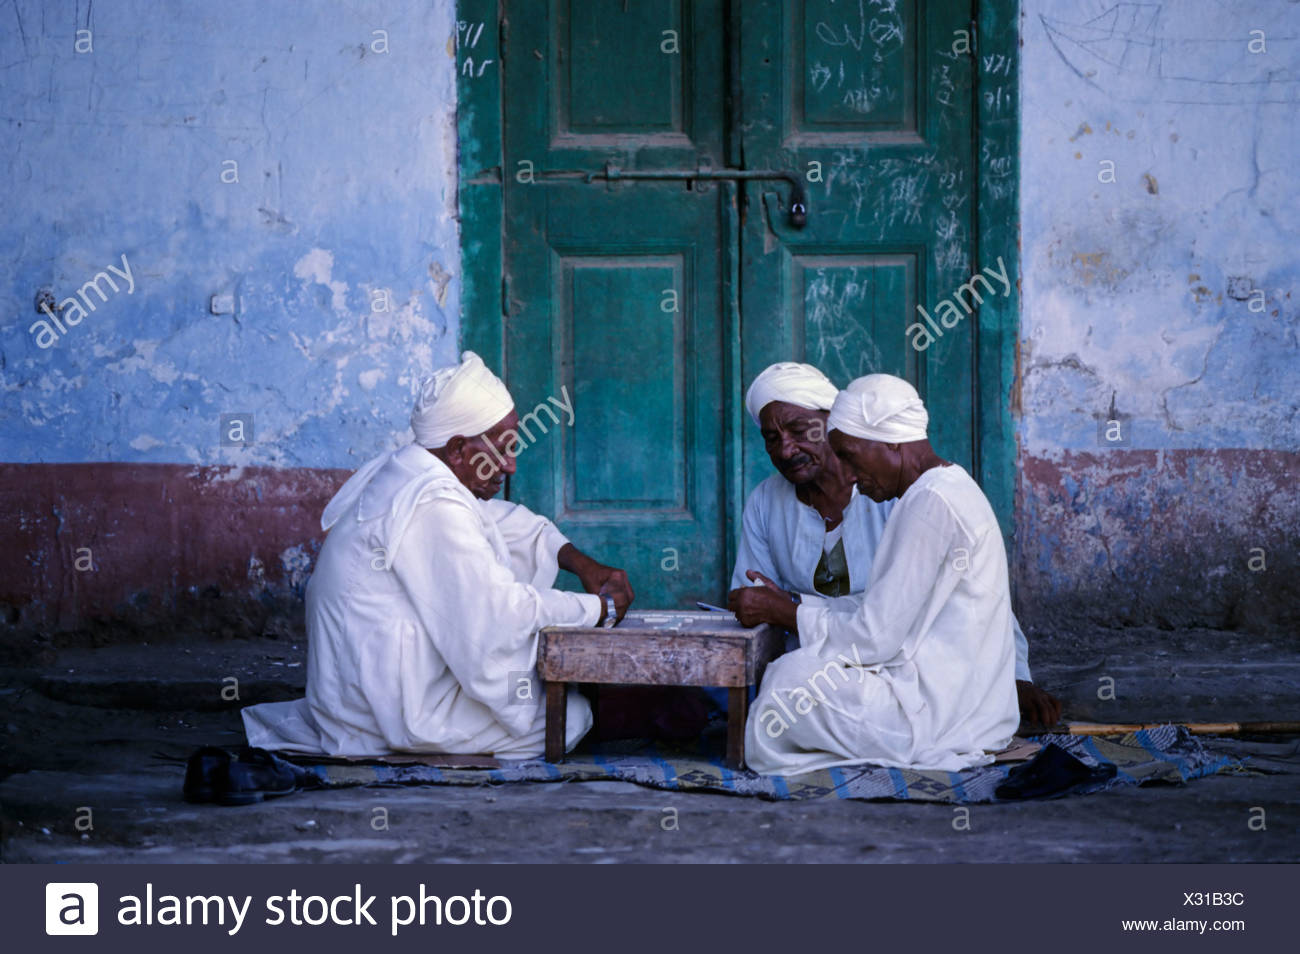 Egyptians playing dominos, play, men, game, gamblers, djellabea, white, traditional, turban, El Queseir, Egypt, Africa - Stock Image